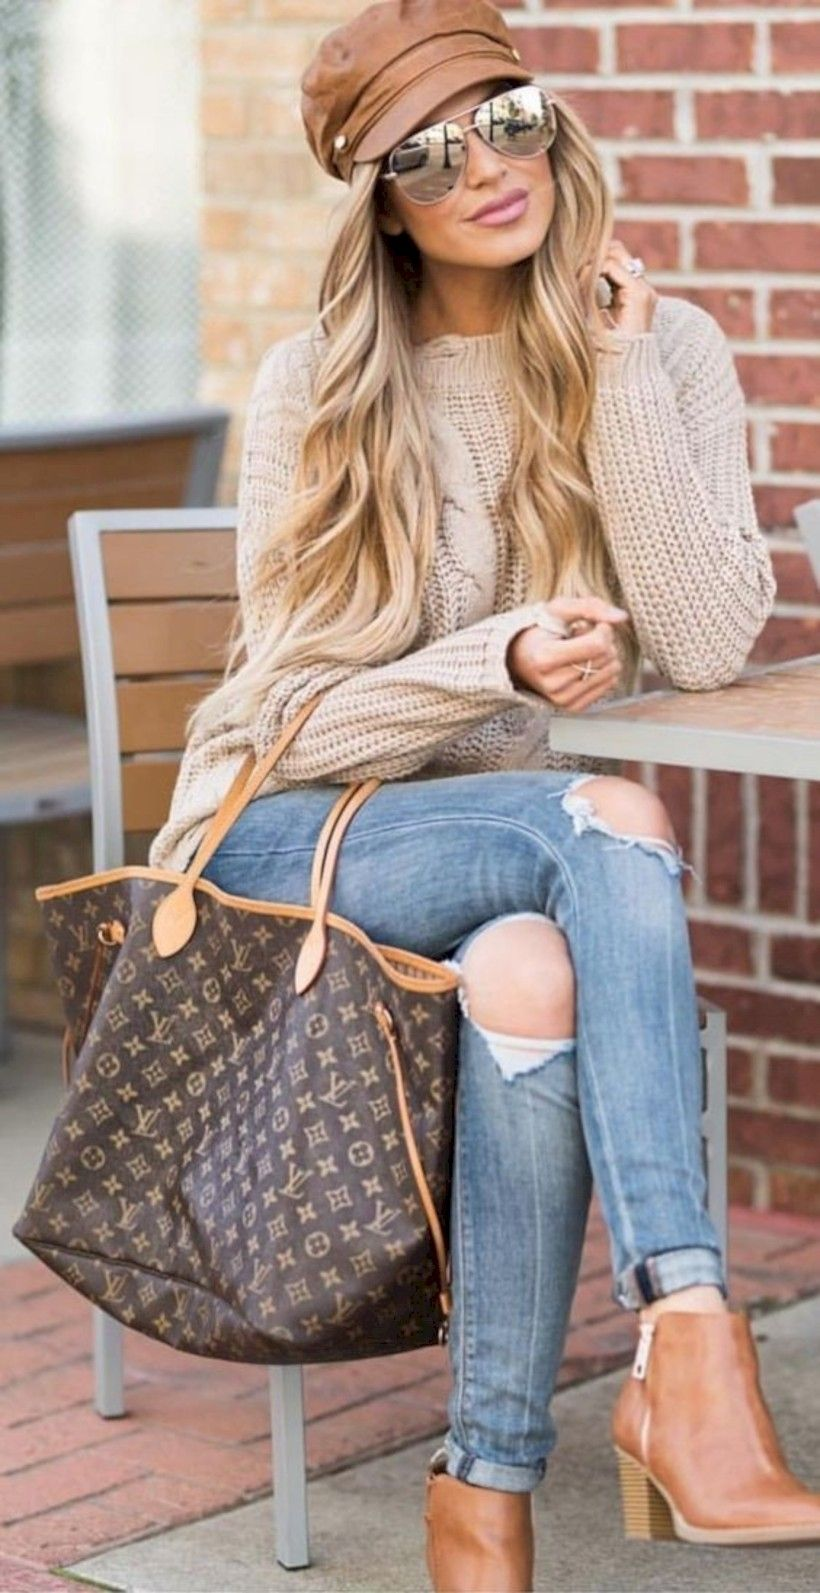 edacccba2c5 Amazing 40 Cute Casual Winter Fashion Outfits for Women http   looksglam.com